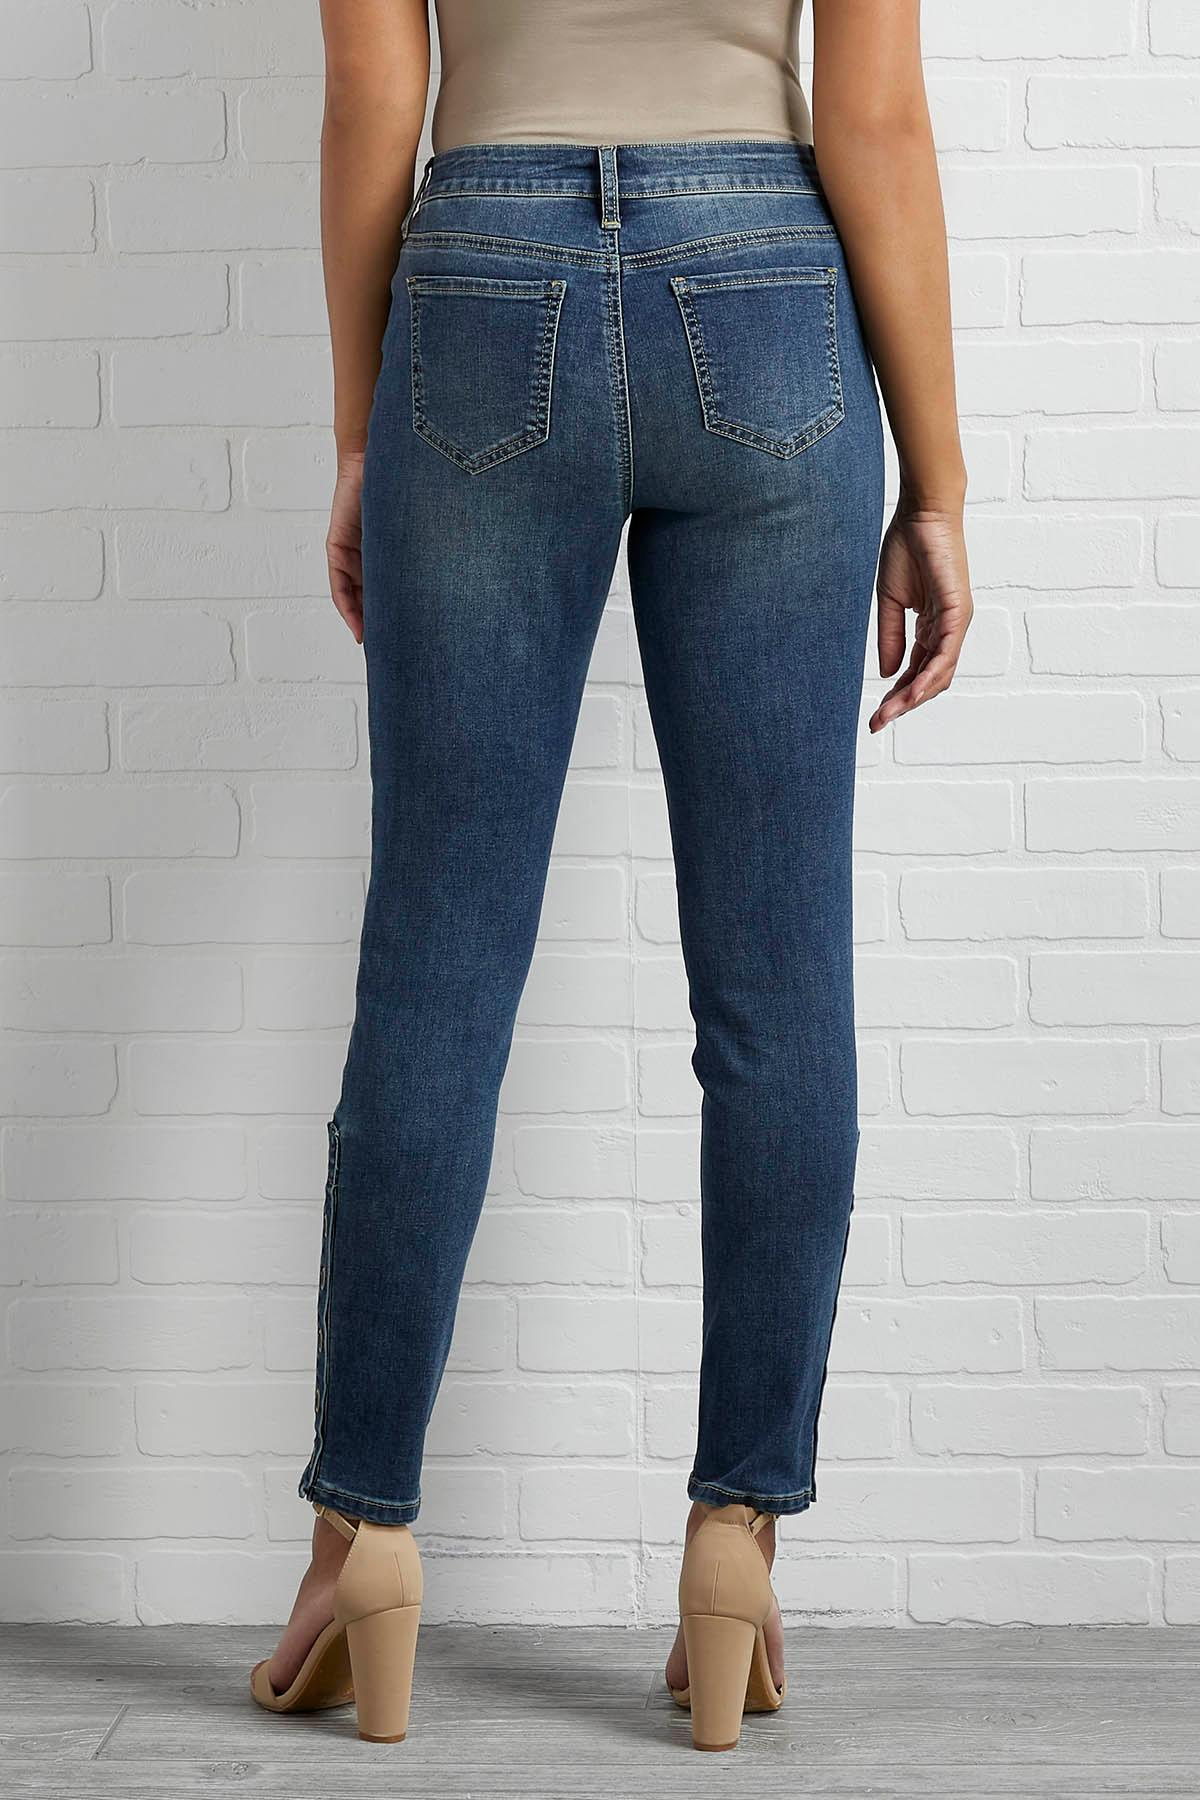 Cute As A Button Ankle Jeans